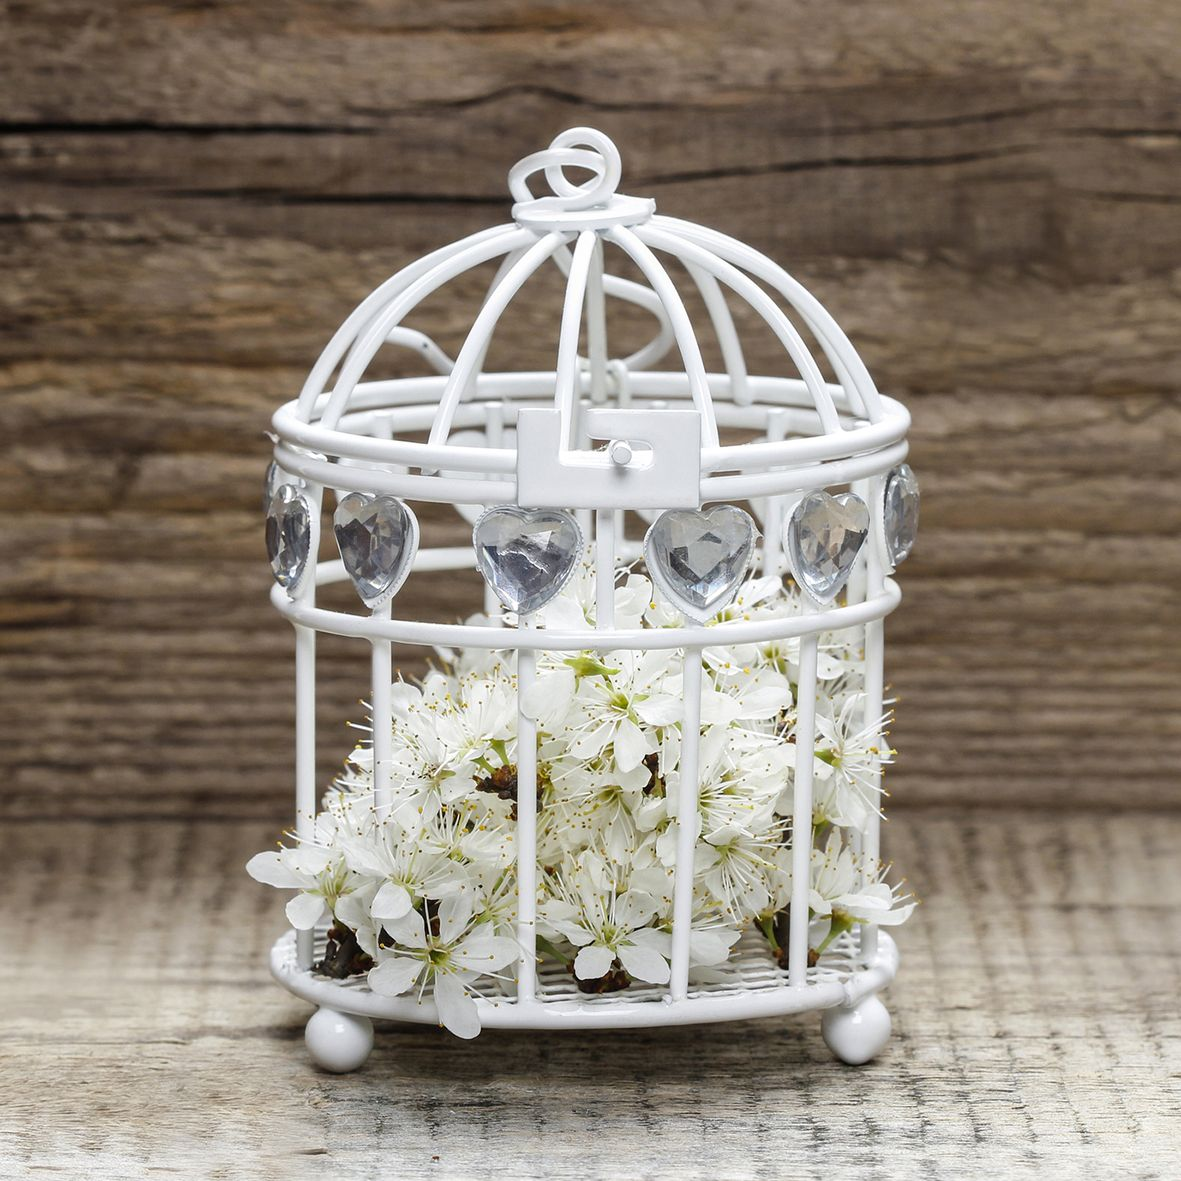 Bird and Birdcage Decorations category image